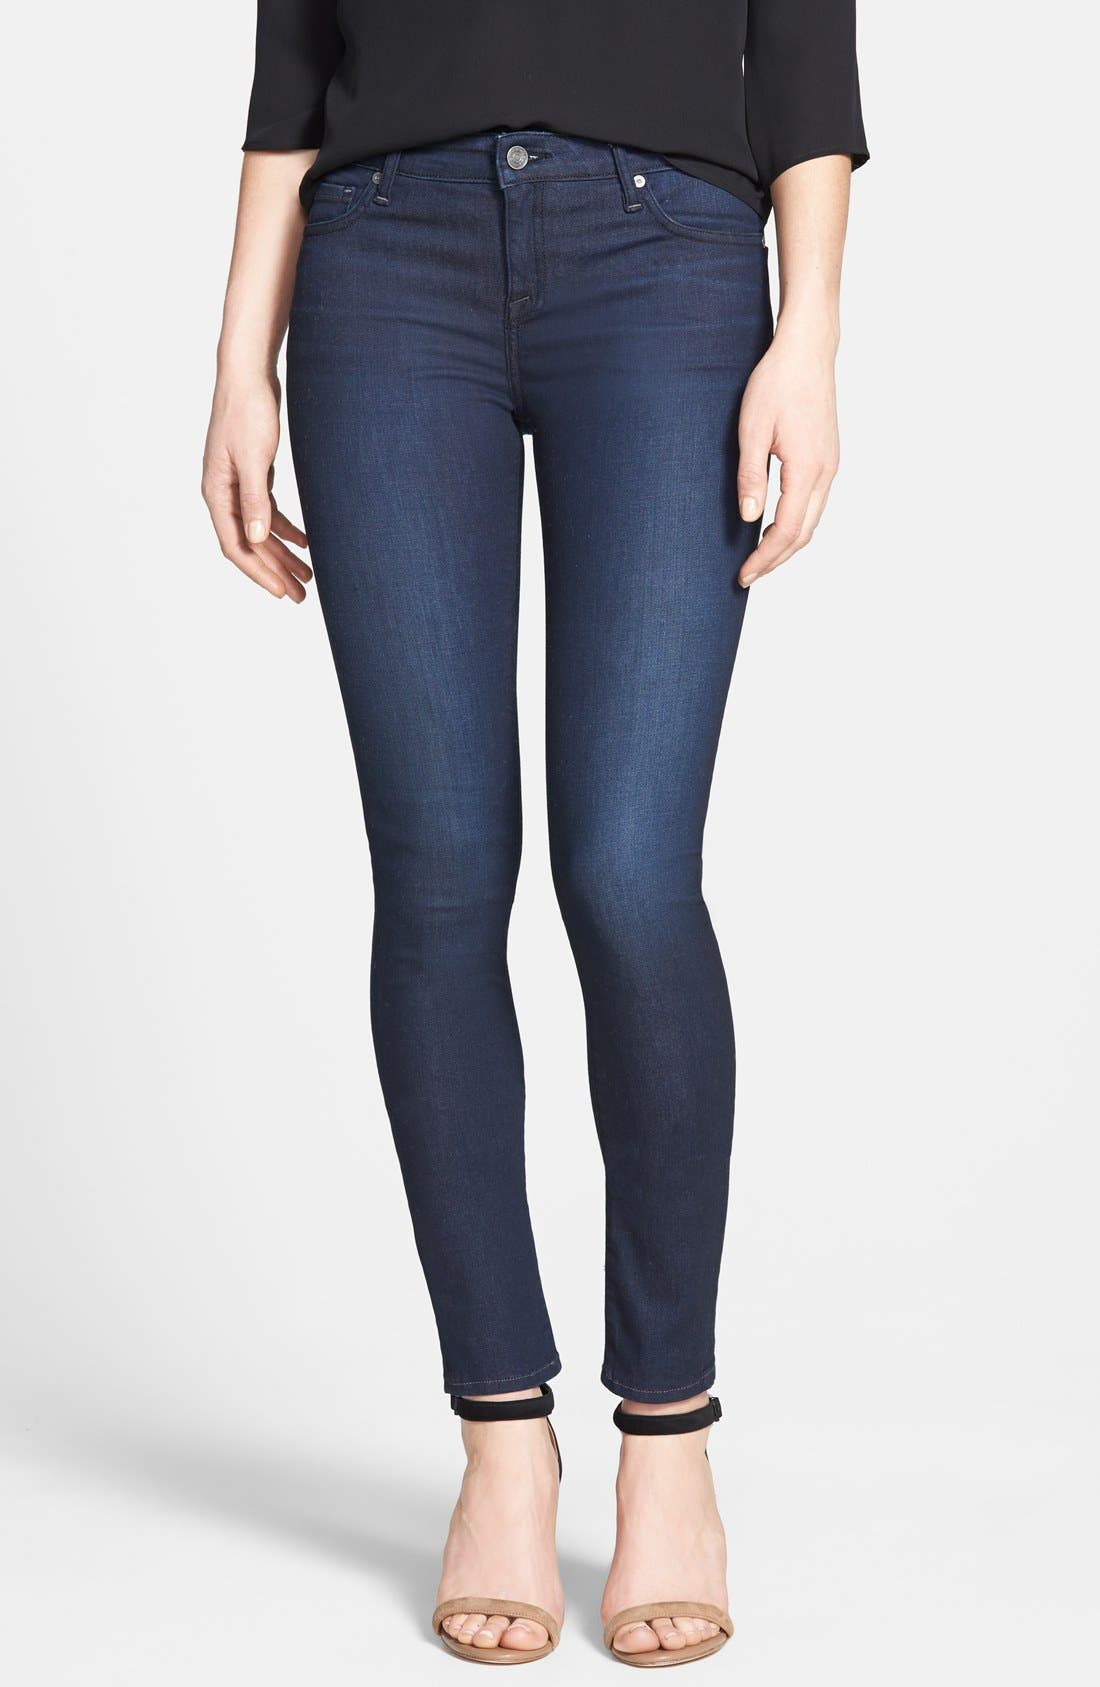 Alternate Image 1 Selected - Joie Stretch Skinny Jeans (Everest)